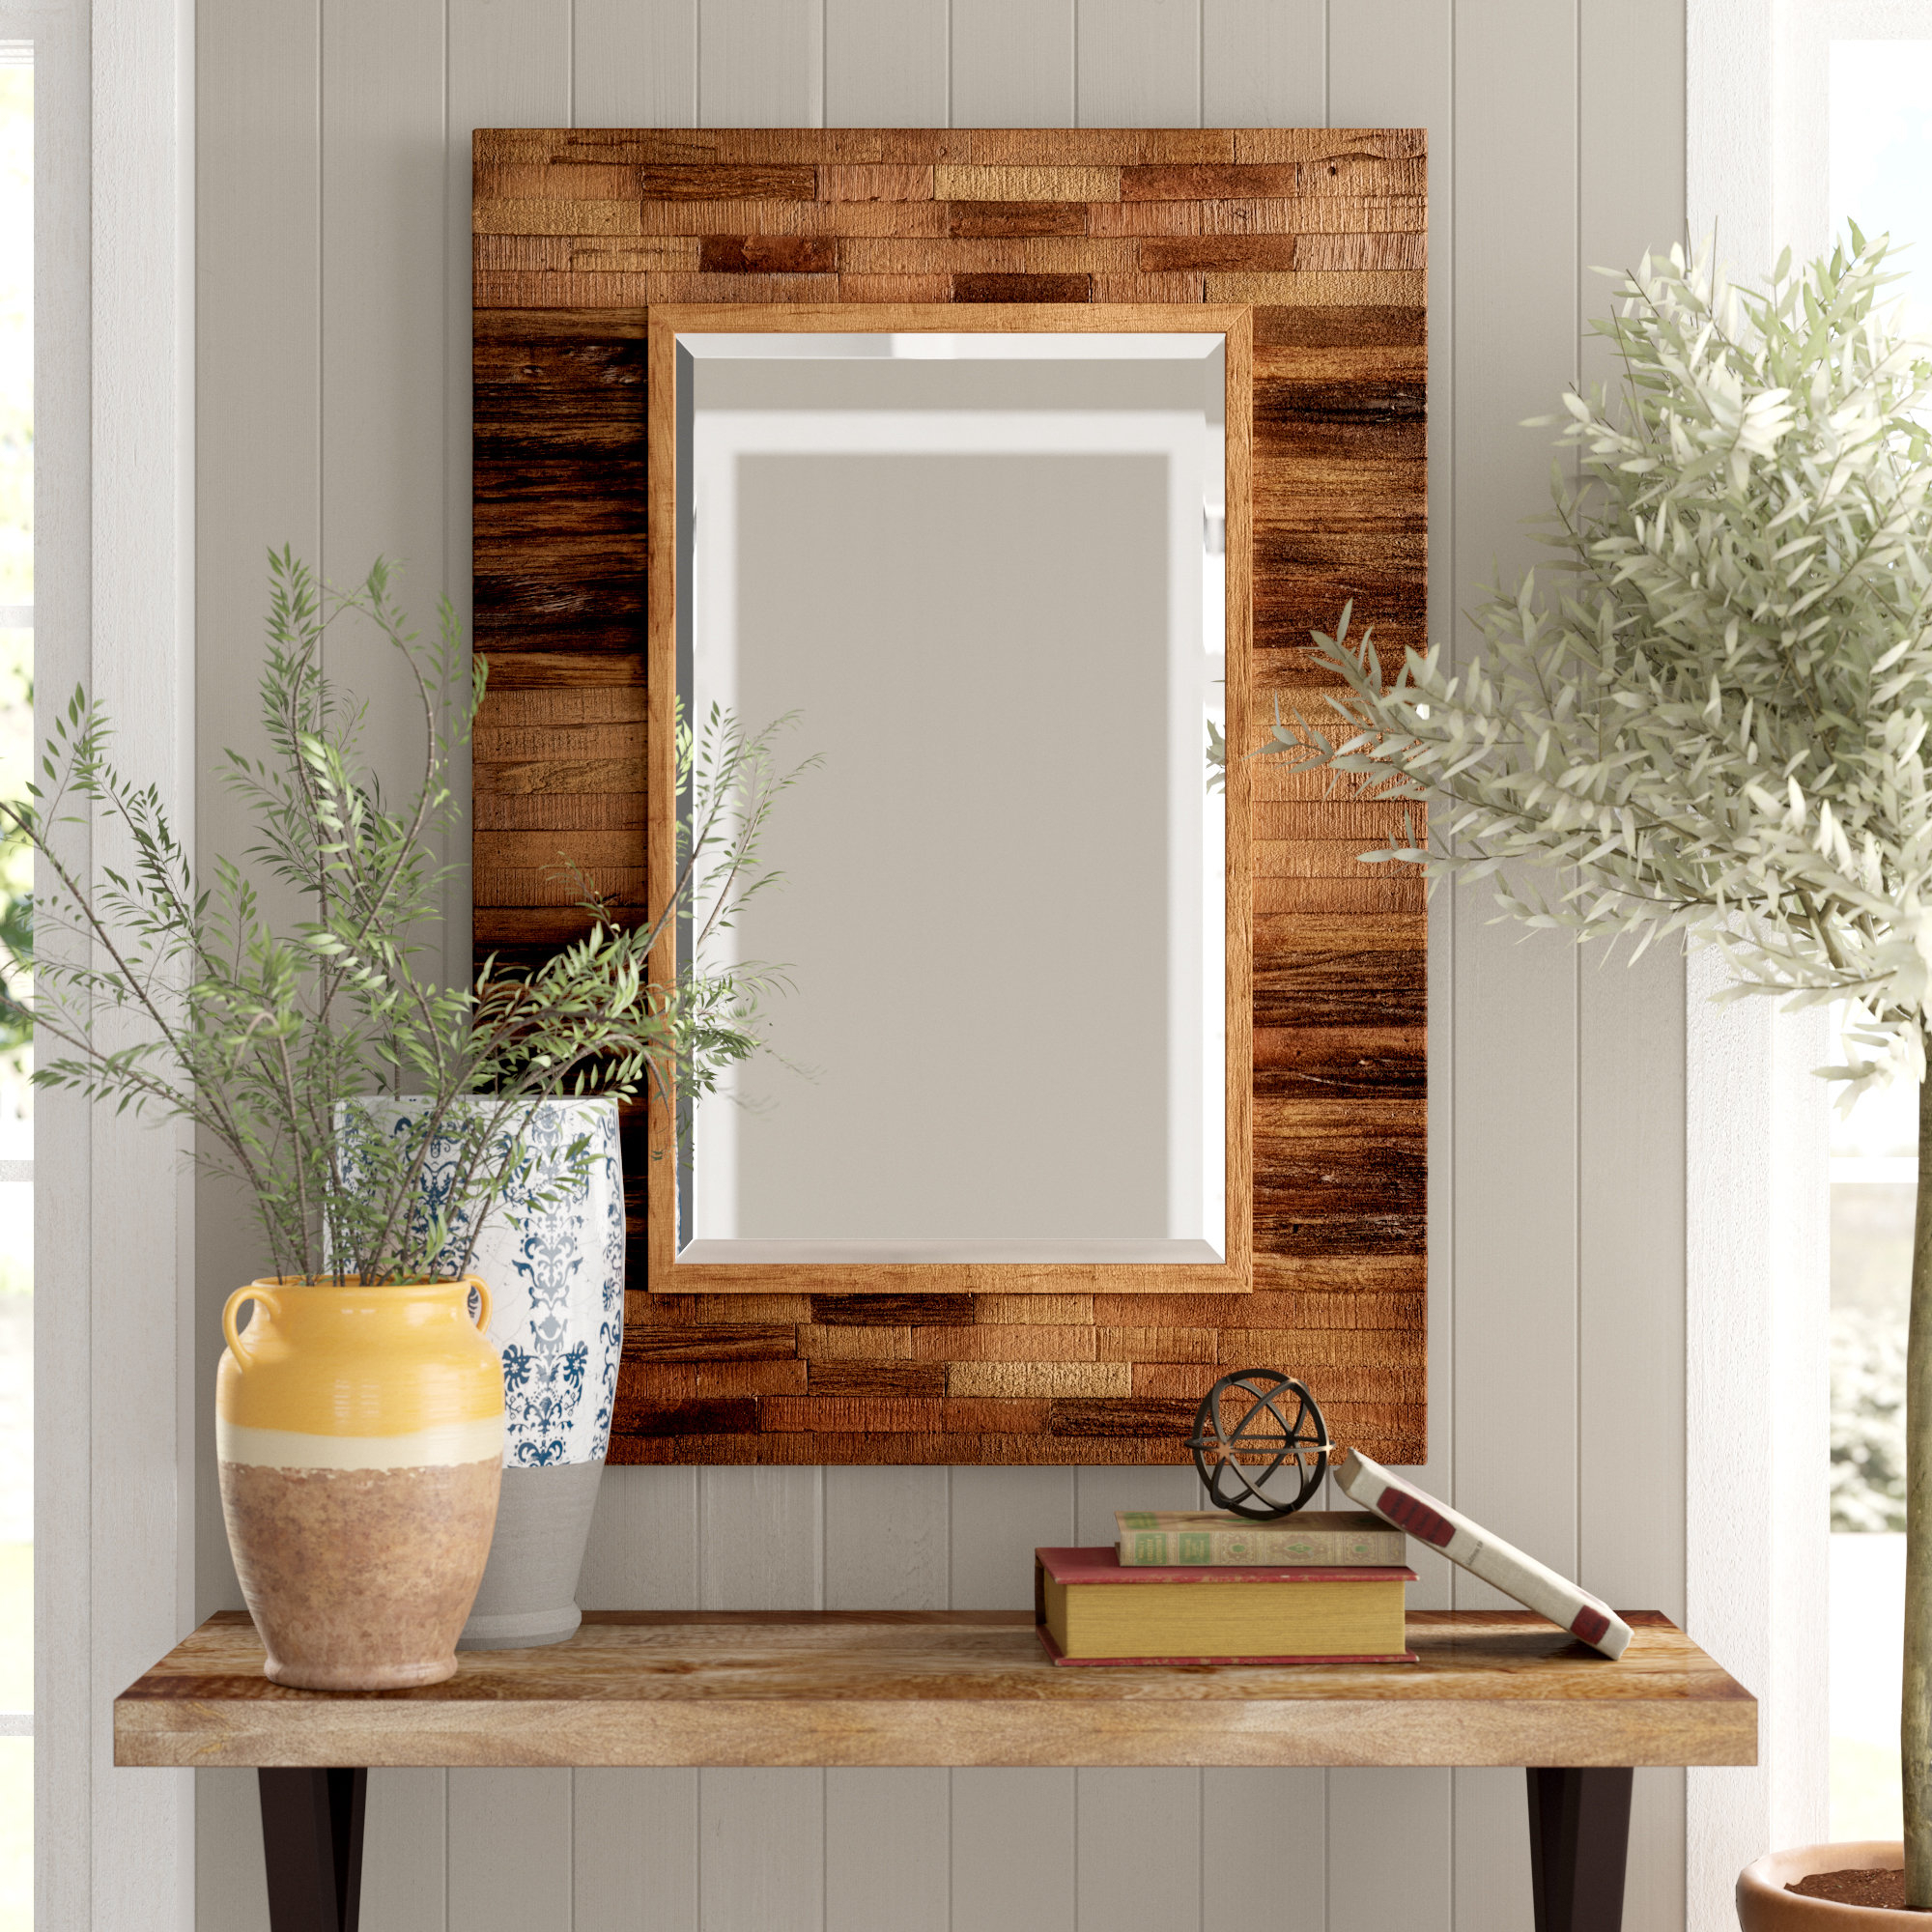 Booth Reclaimed Wall Mirror Accent Intended For Booth Reclaimed Wall Mirrors Accent (Image 2 of 20)